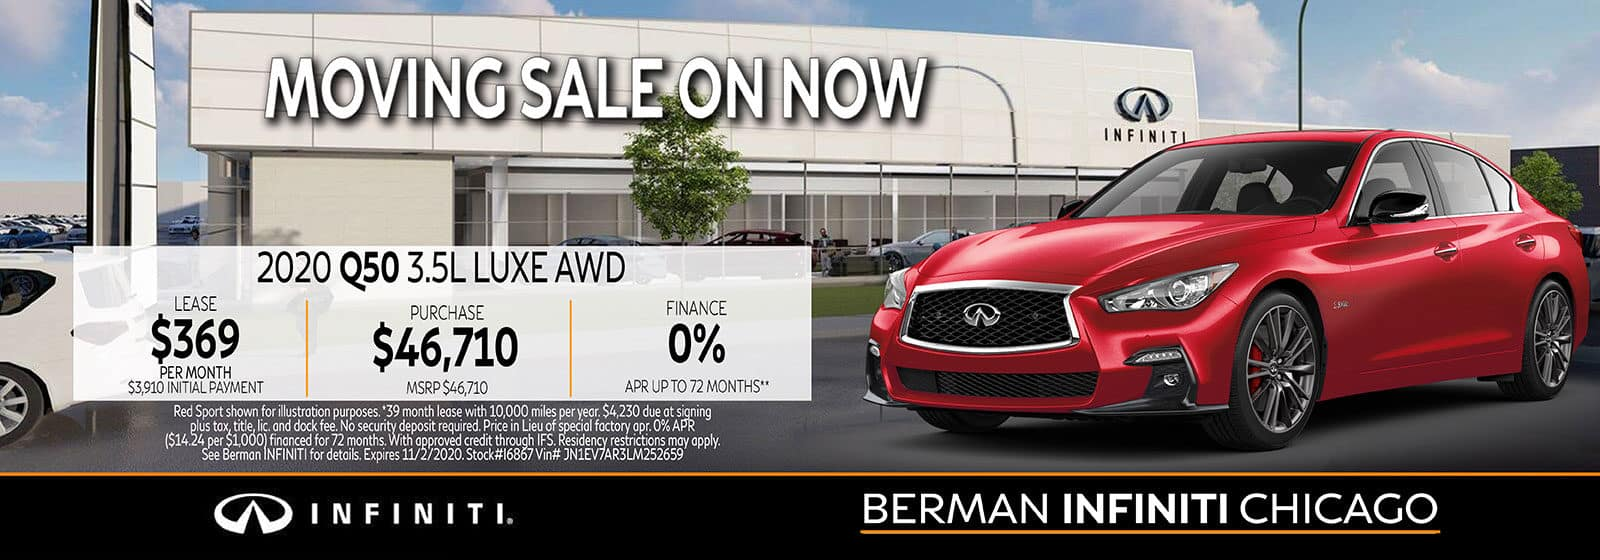 New 2020 INFINITI Q50 October offer at Berman INFINITI Chicago!